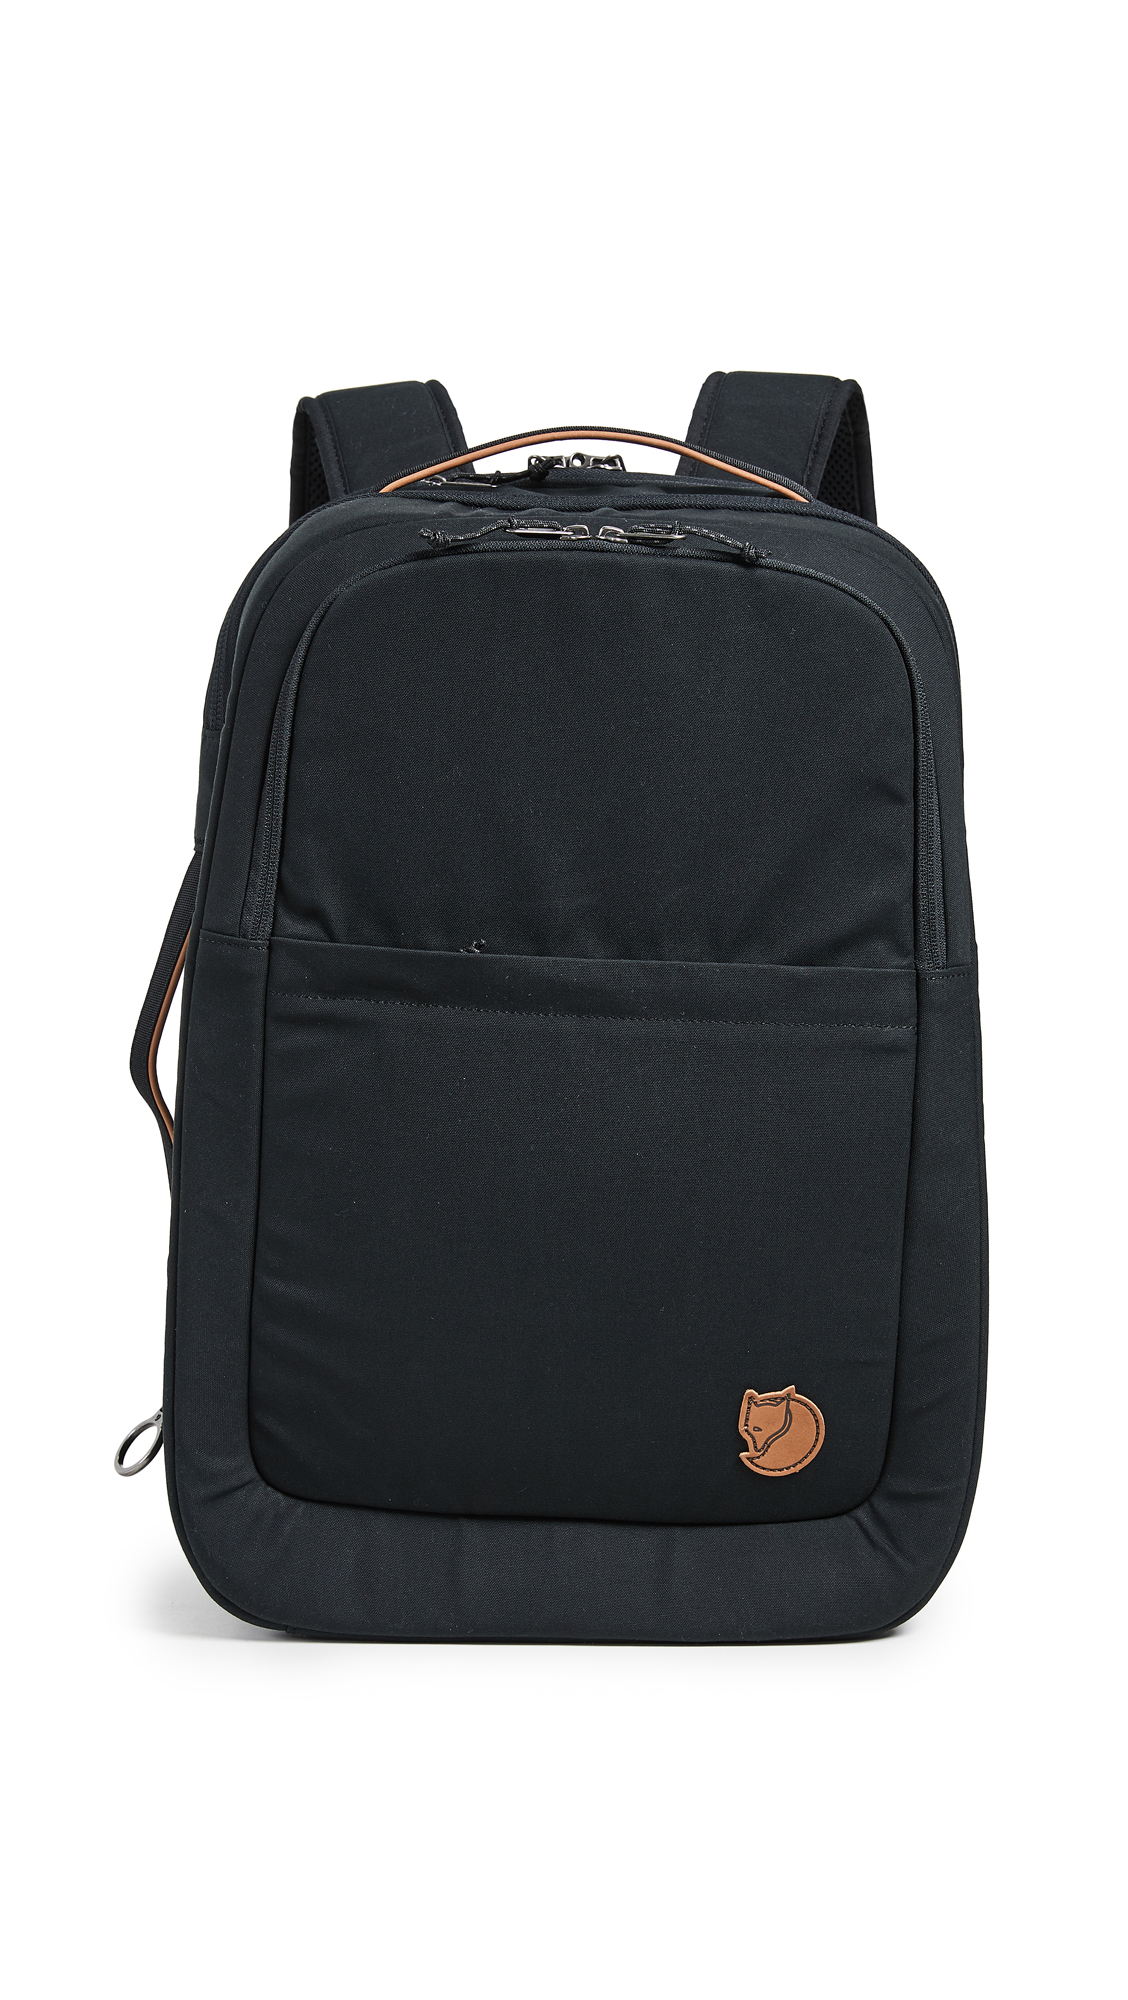 FJALL RAVEN Travel Backpack in Black